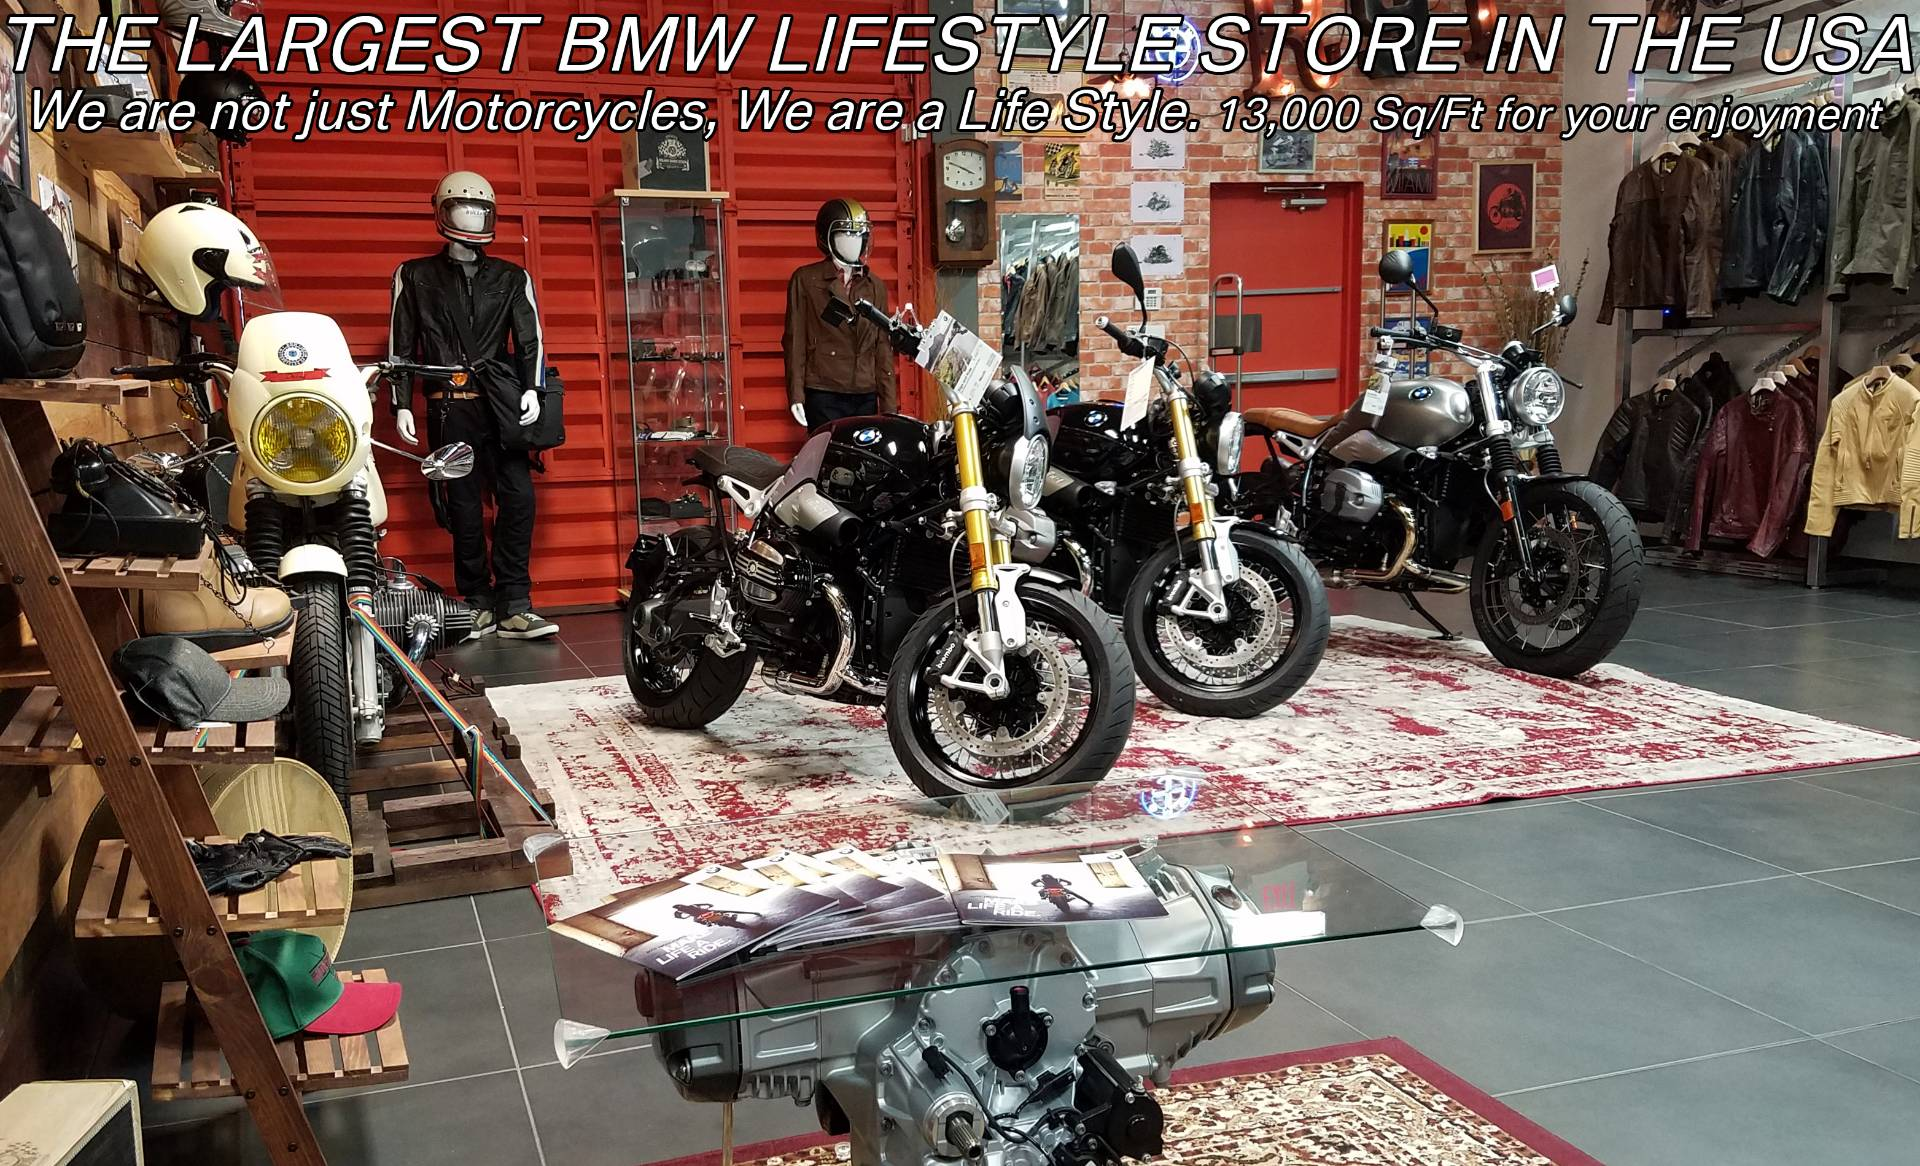 New 2019 BMW K 1600 B for sale, BMW K 1600B for sale, BMW Motorcycle K1600B, new BMW Bagger, Gran America. BMW Motorcycles of Miami, Motorcycles of Miami, Motorcycles Miami - Photo 31